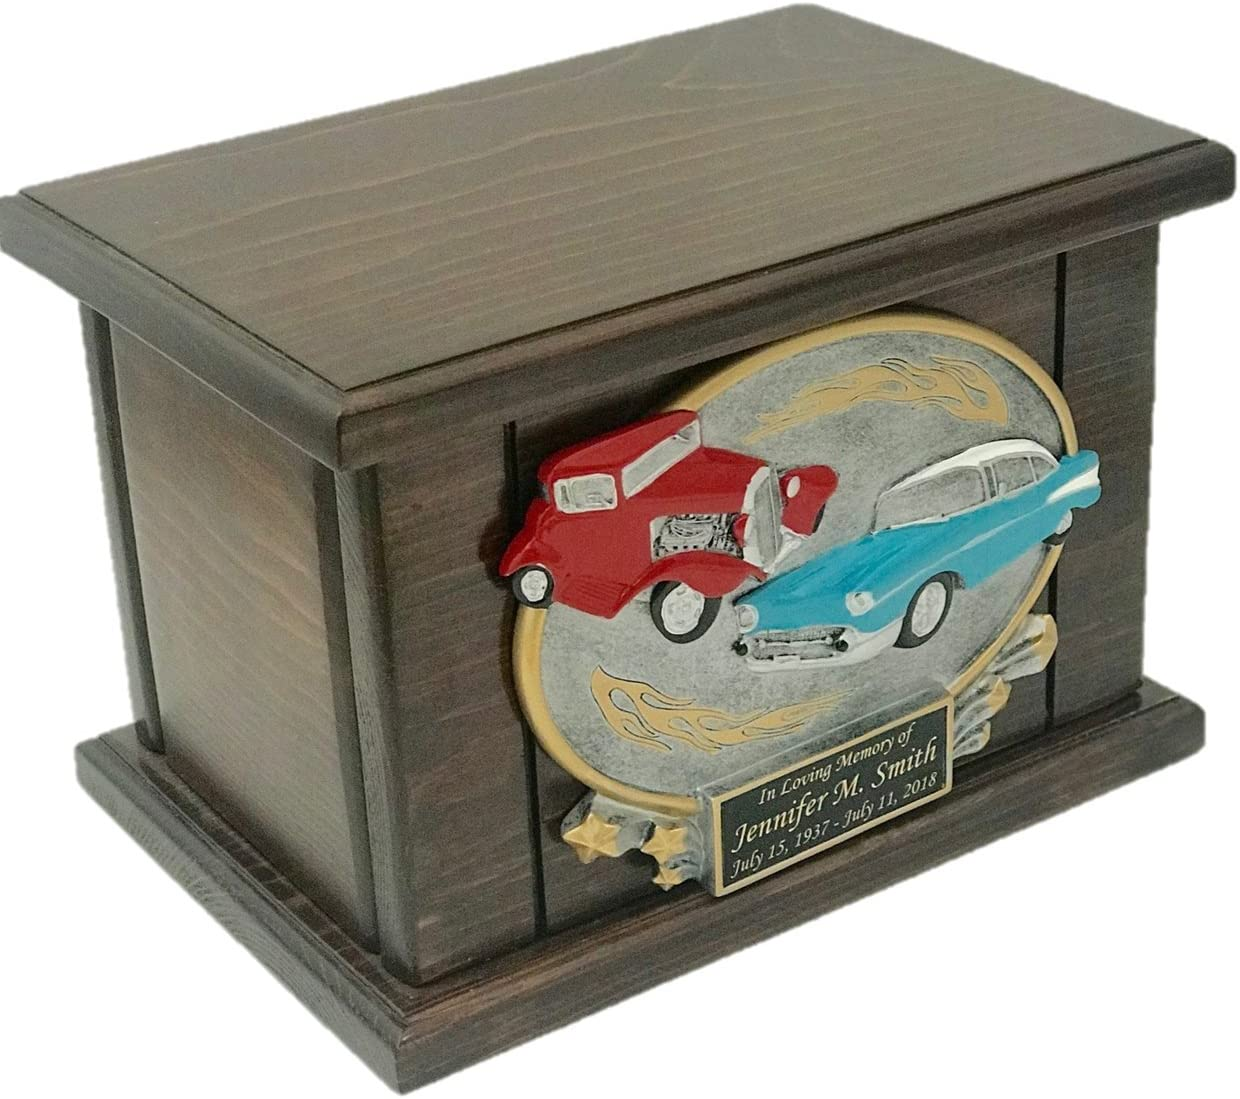 Wooden Funeral Urn Wood Urn Car Urn Classic Cars Urn with Engraving NWA Car Lovers Cremation Urn